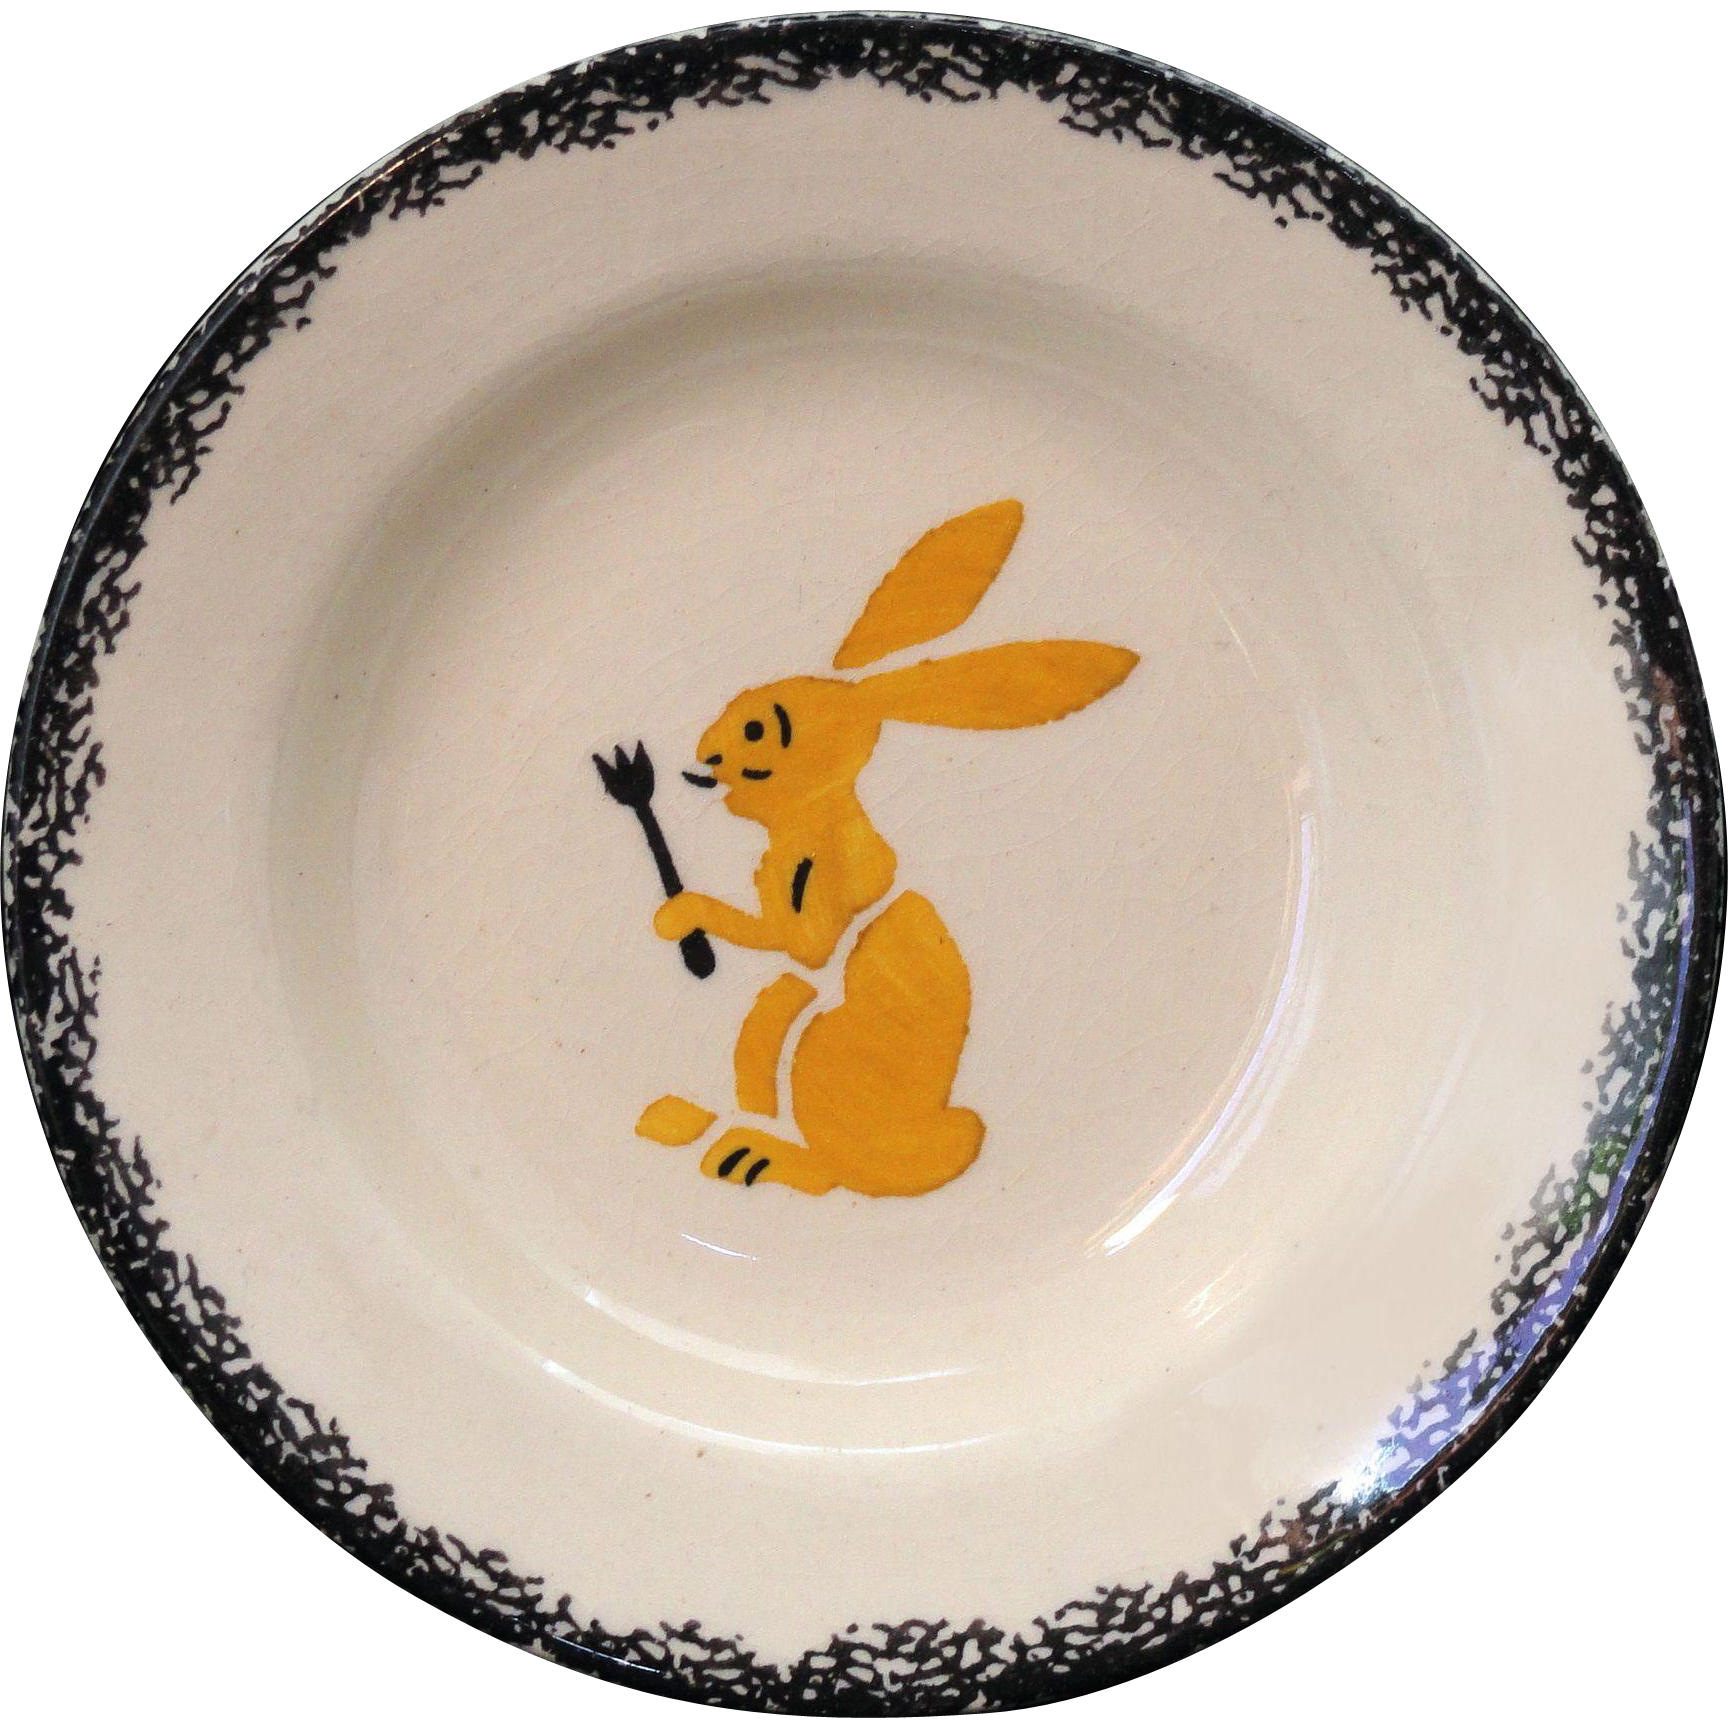 French Faience Childs Plate HUNGRY BUNNY RABBIT with FORK c1900 Spatter Stencil